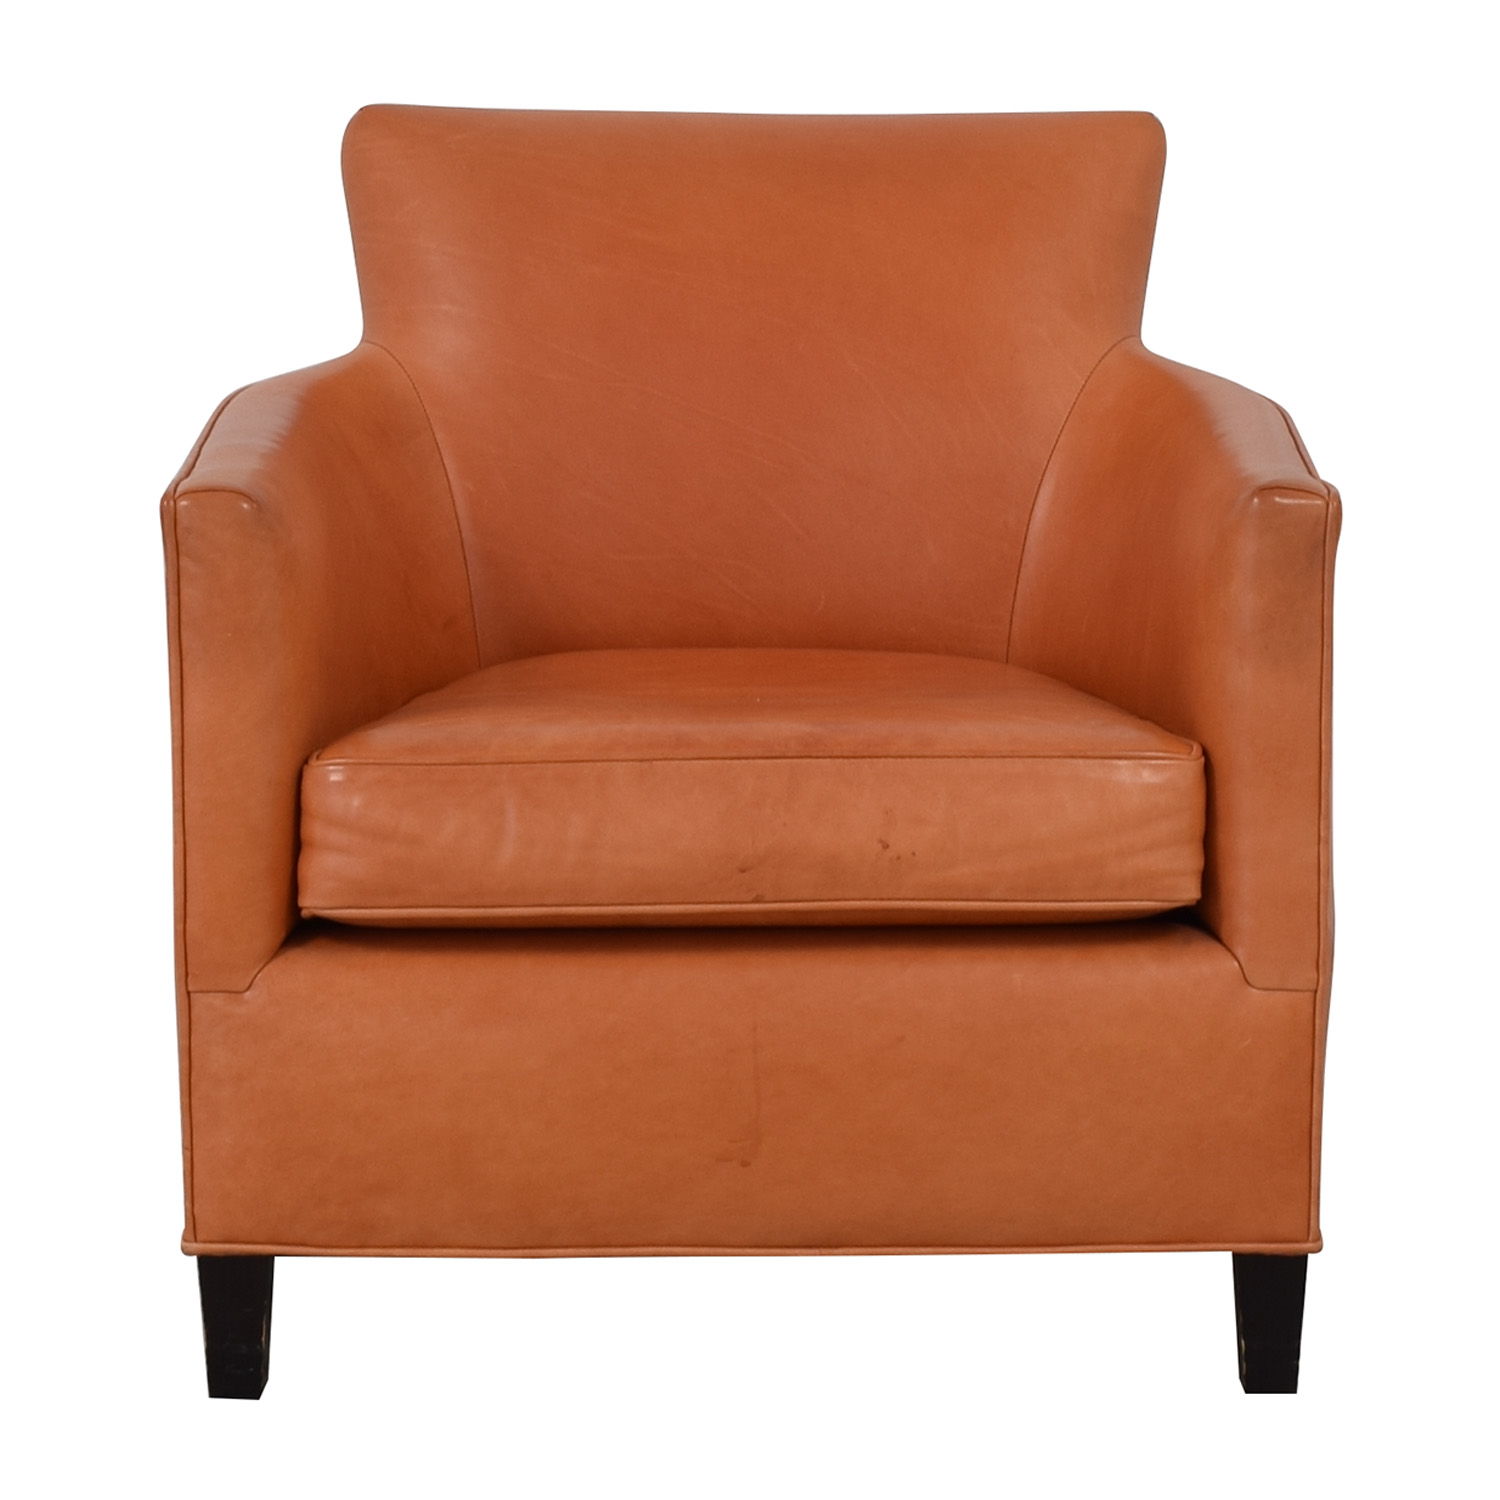 shop Crate & Barrel Orange Accent Chair Crate & Barrel Chairs